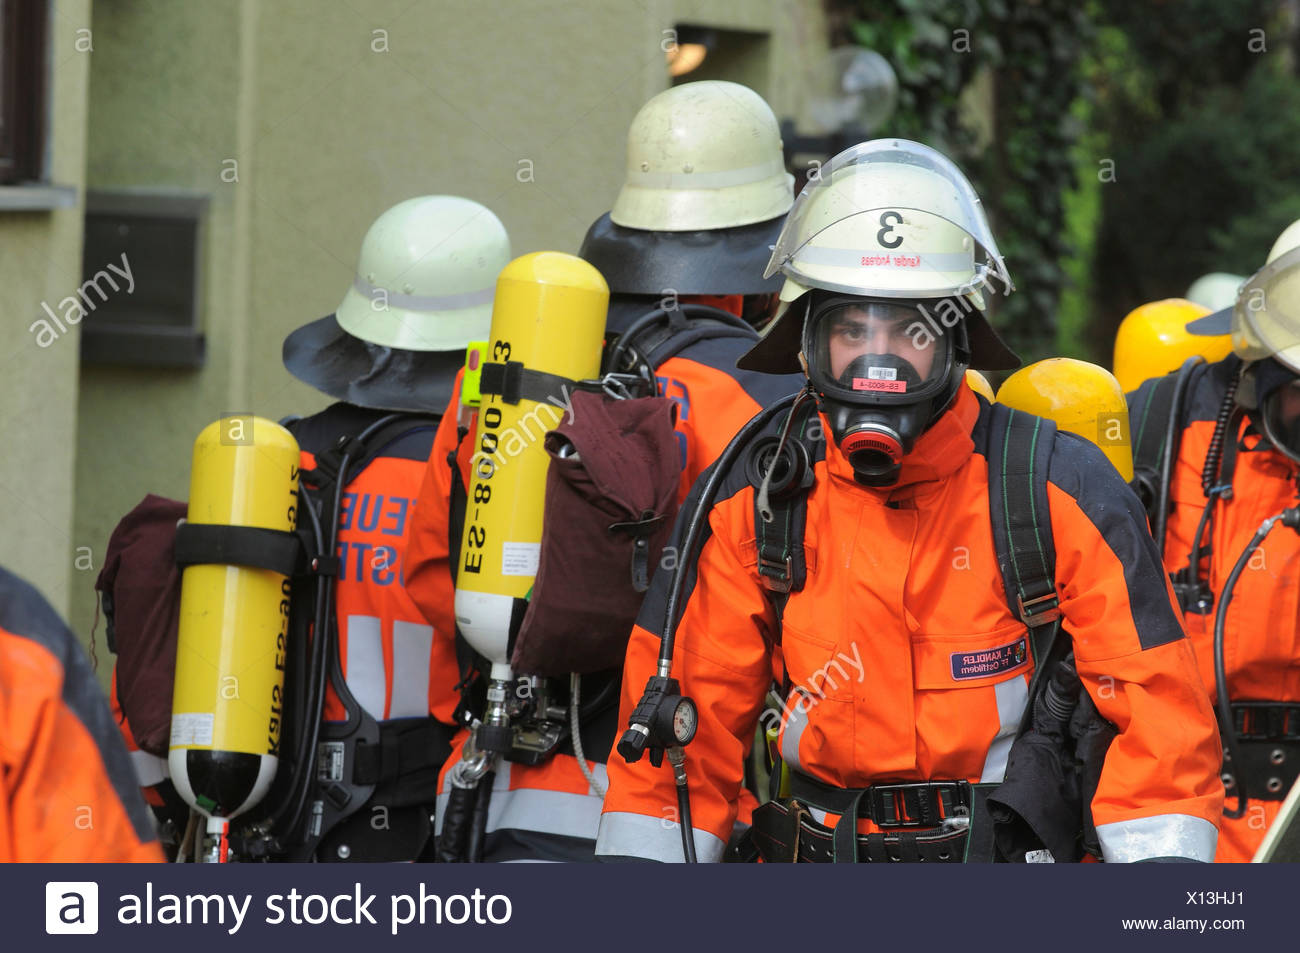 Firefighter action at a room fire, Ostfildern, Baden-Wuerttemberg, Germany, Europe - Stock Image